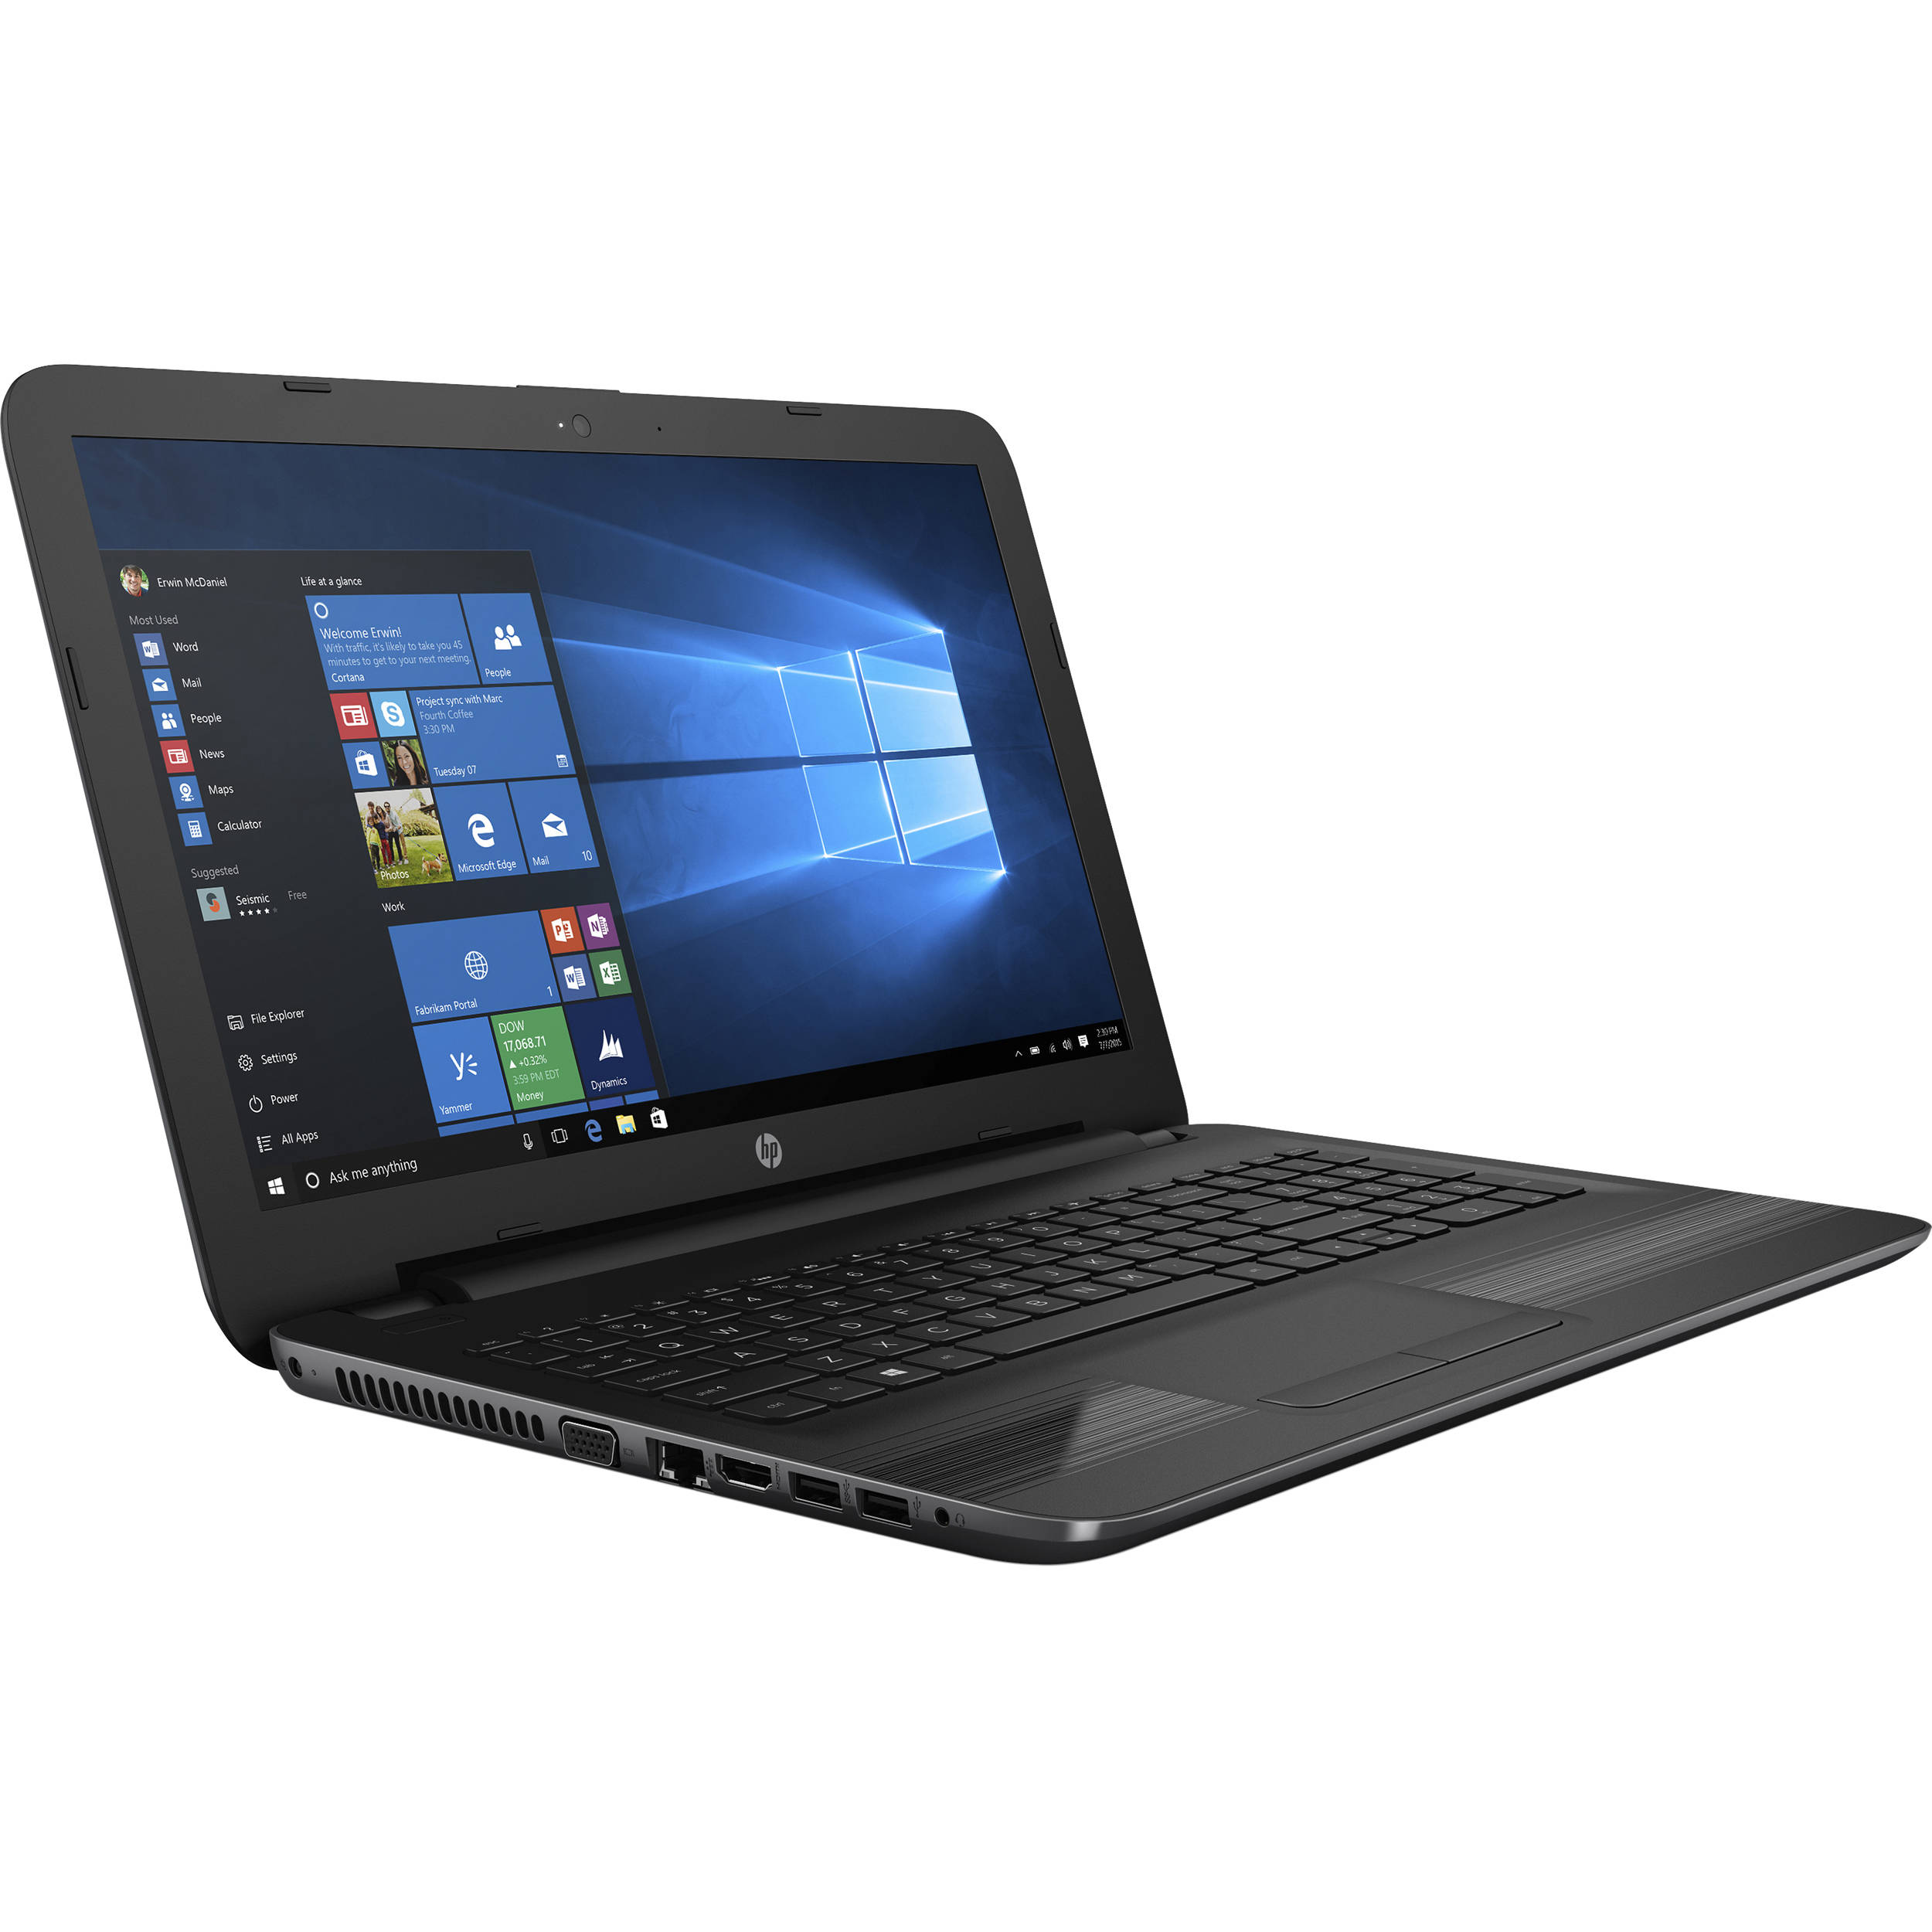 Hp notebook x64-based pc - Hp 15 6 250 G5 Series Notebook